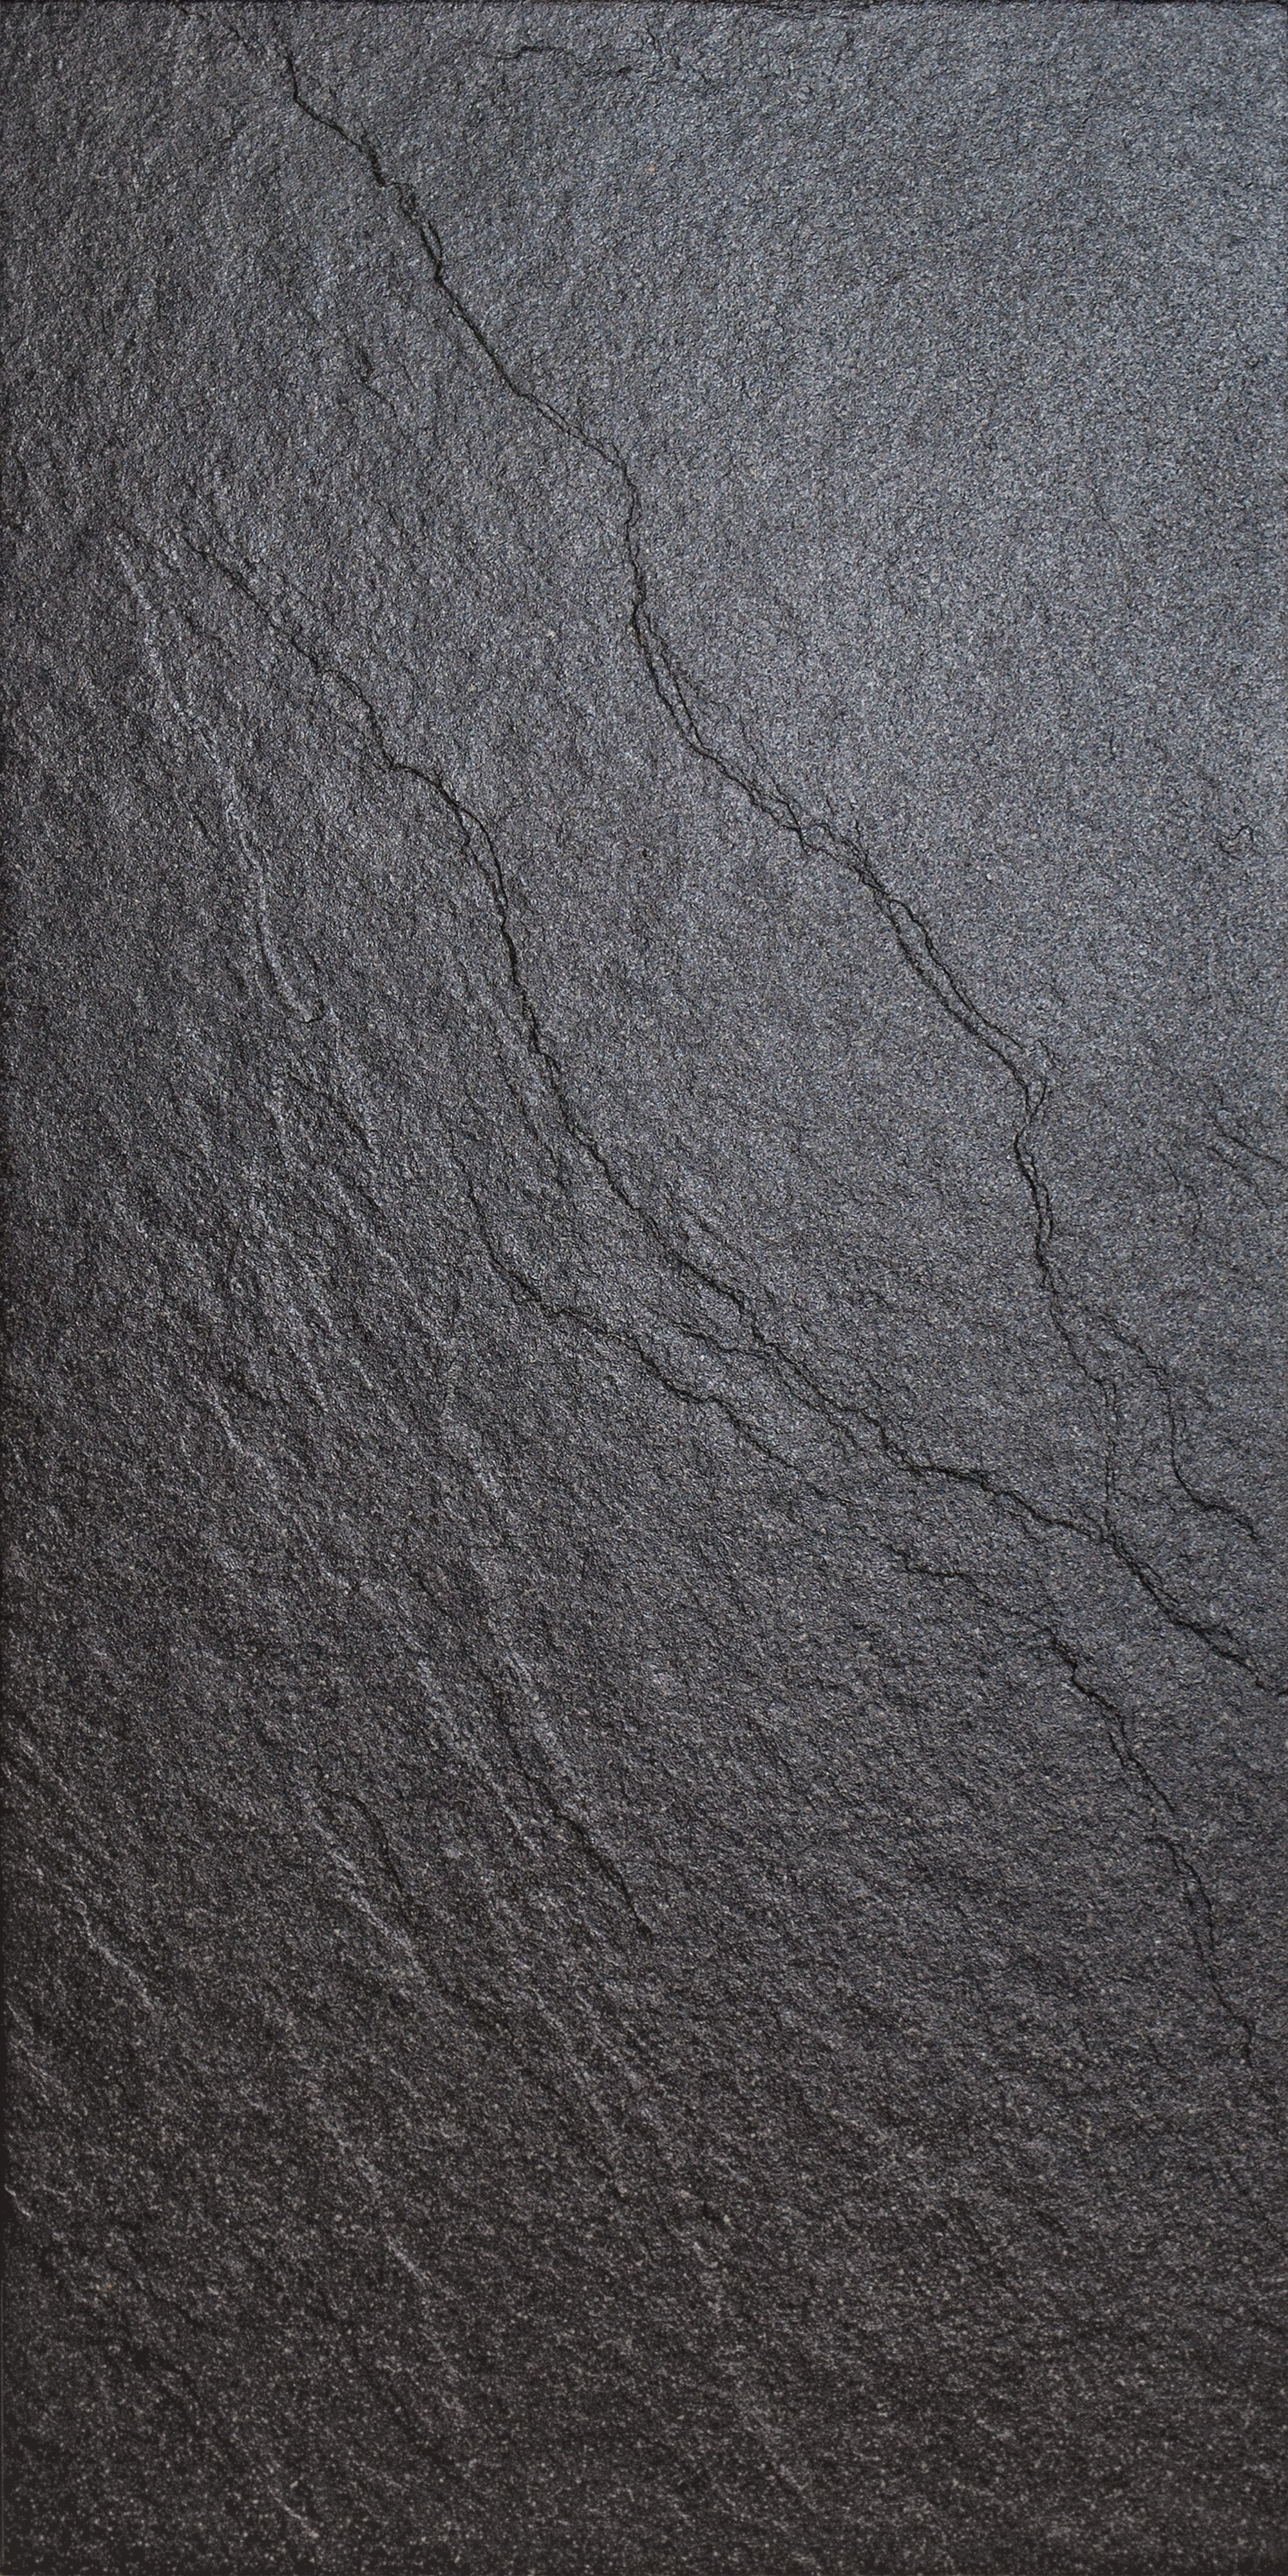 Magma Black Stone Effect Plain Porcelain Wall & Floor Tile, Pack Of 6, (l)600mm (w)300mm